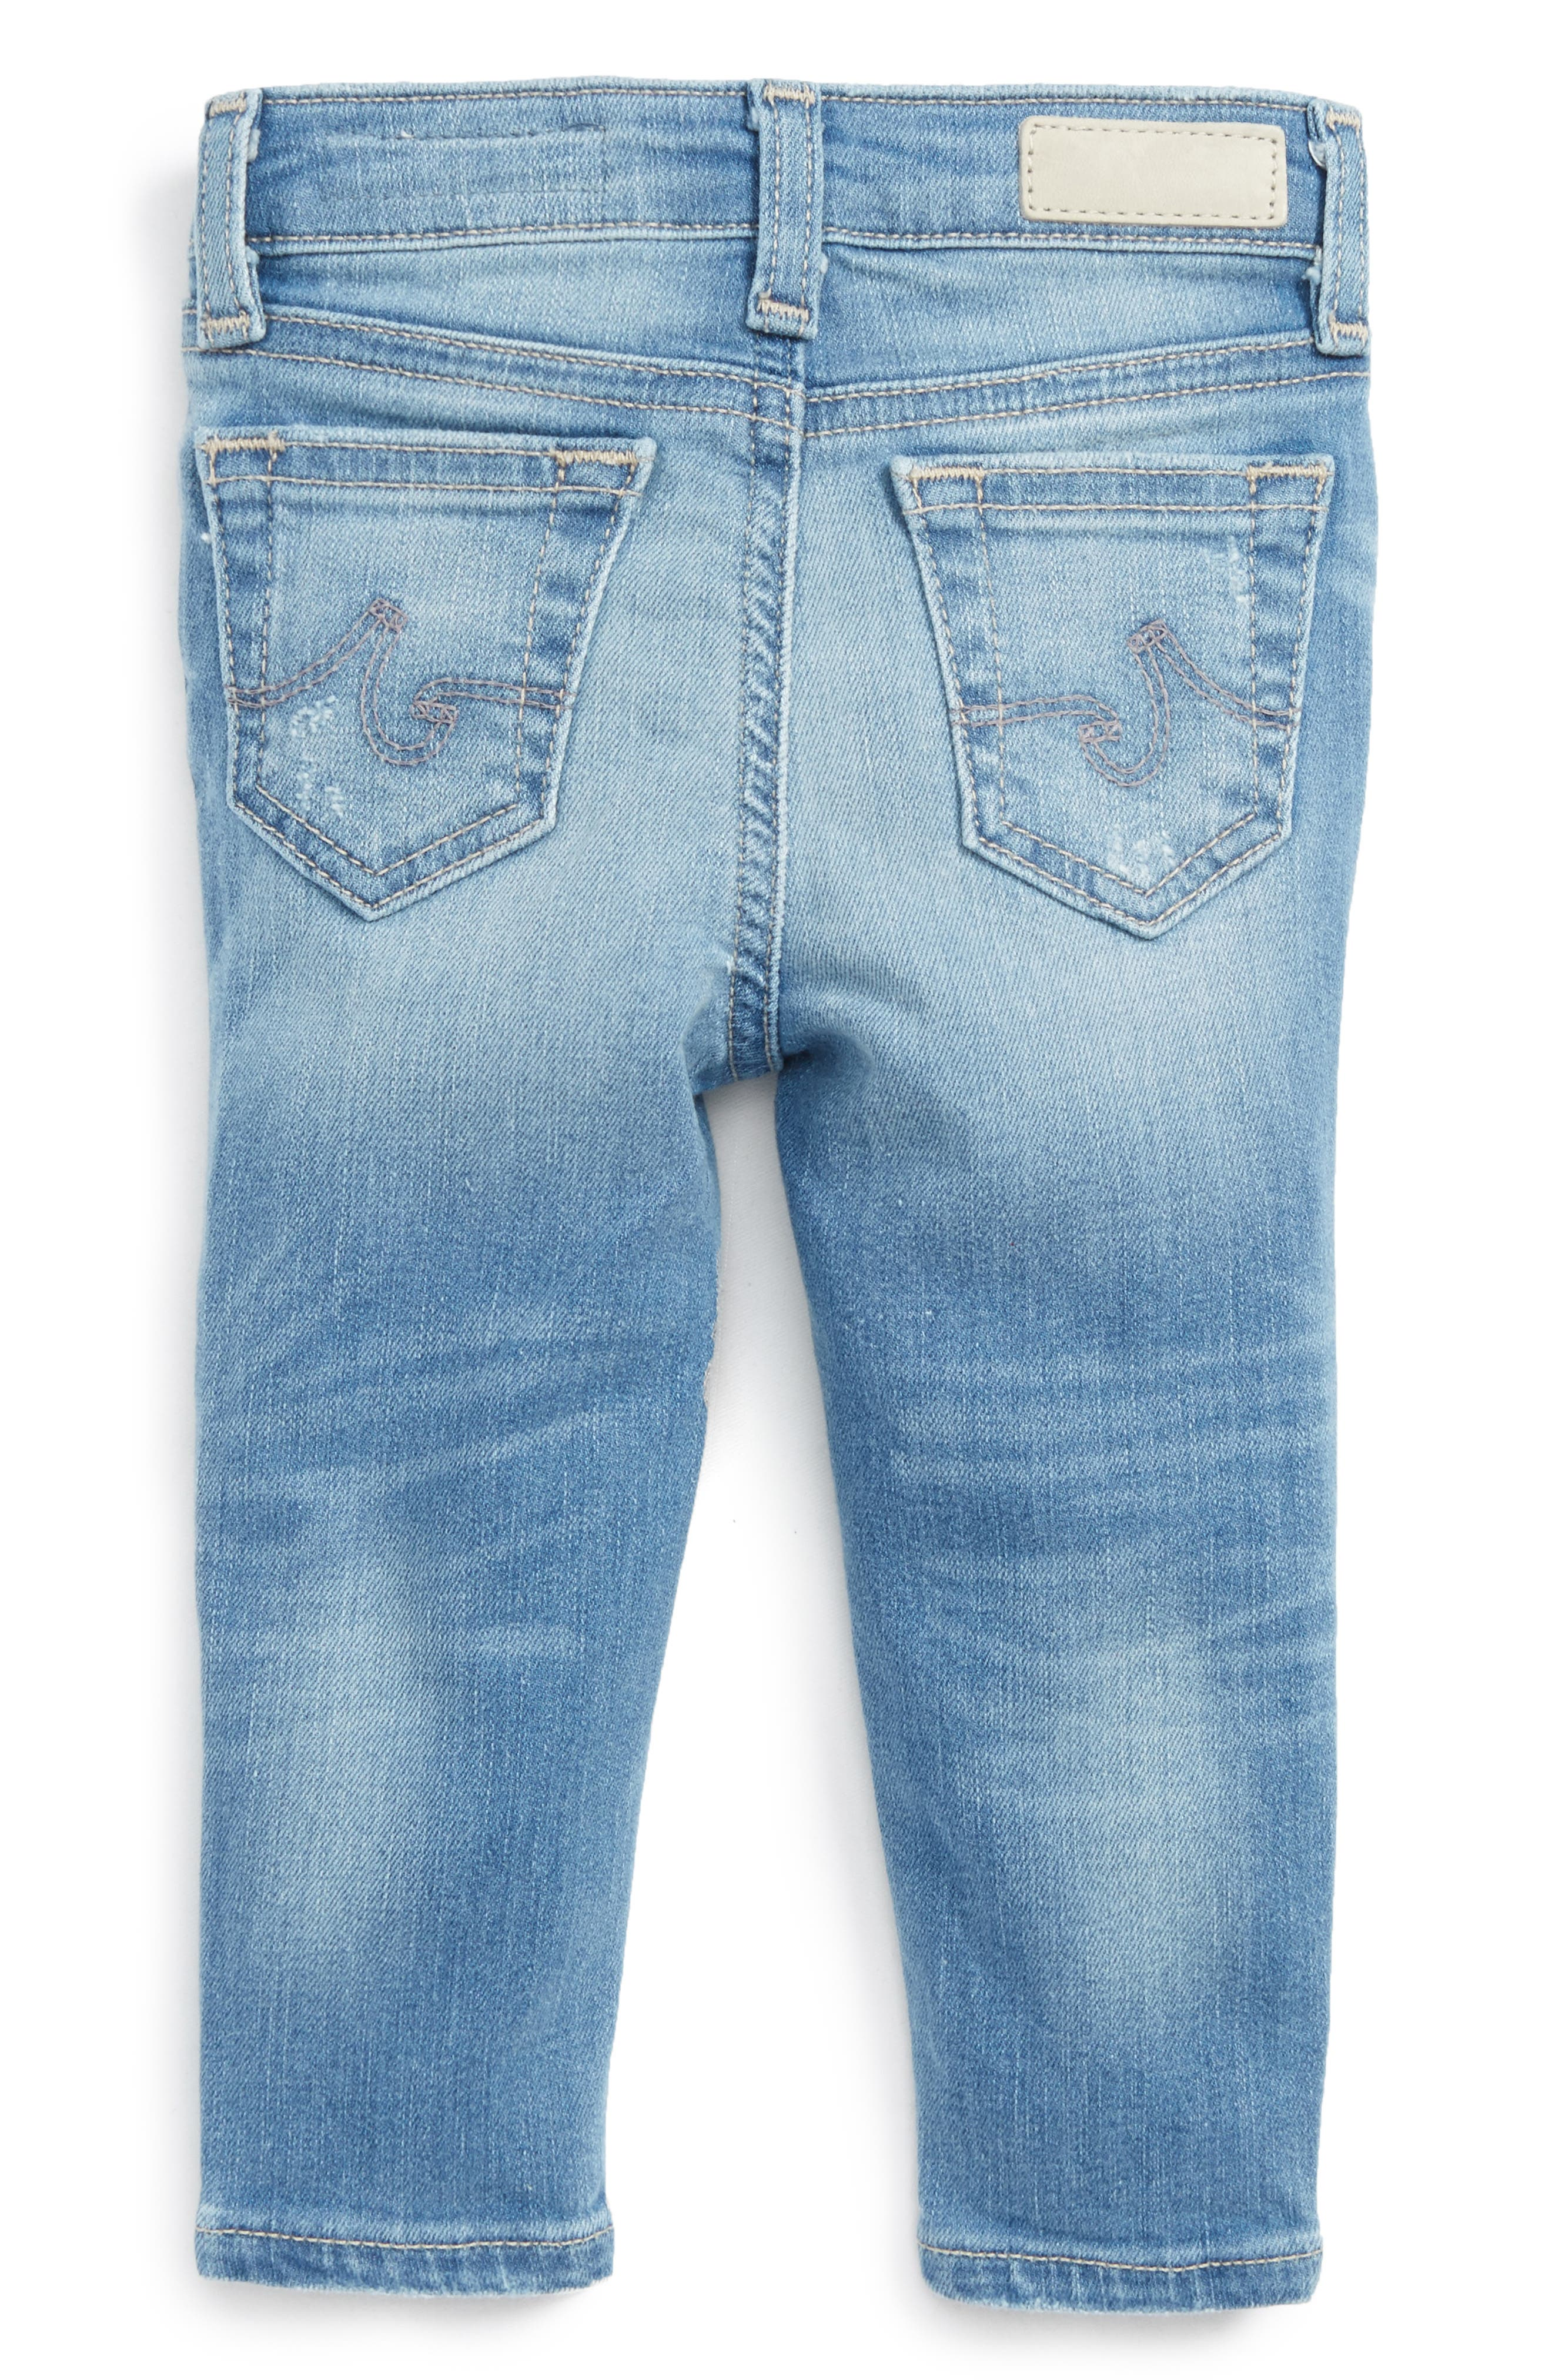 Alternate Image 2  - ag adriano goldschmied kids Ankle Skinny Jeans (Baby Girls)